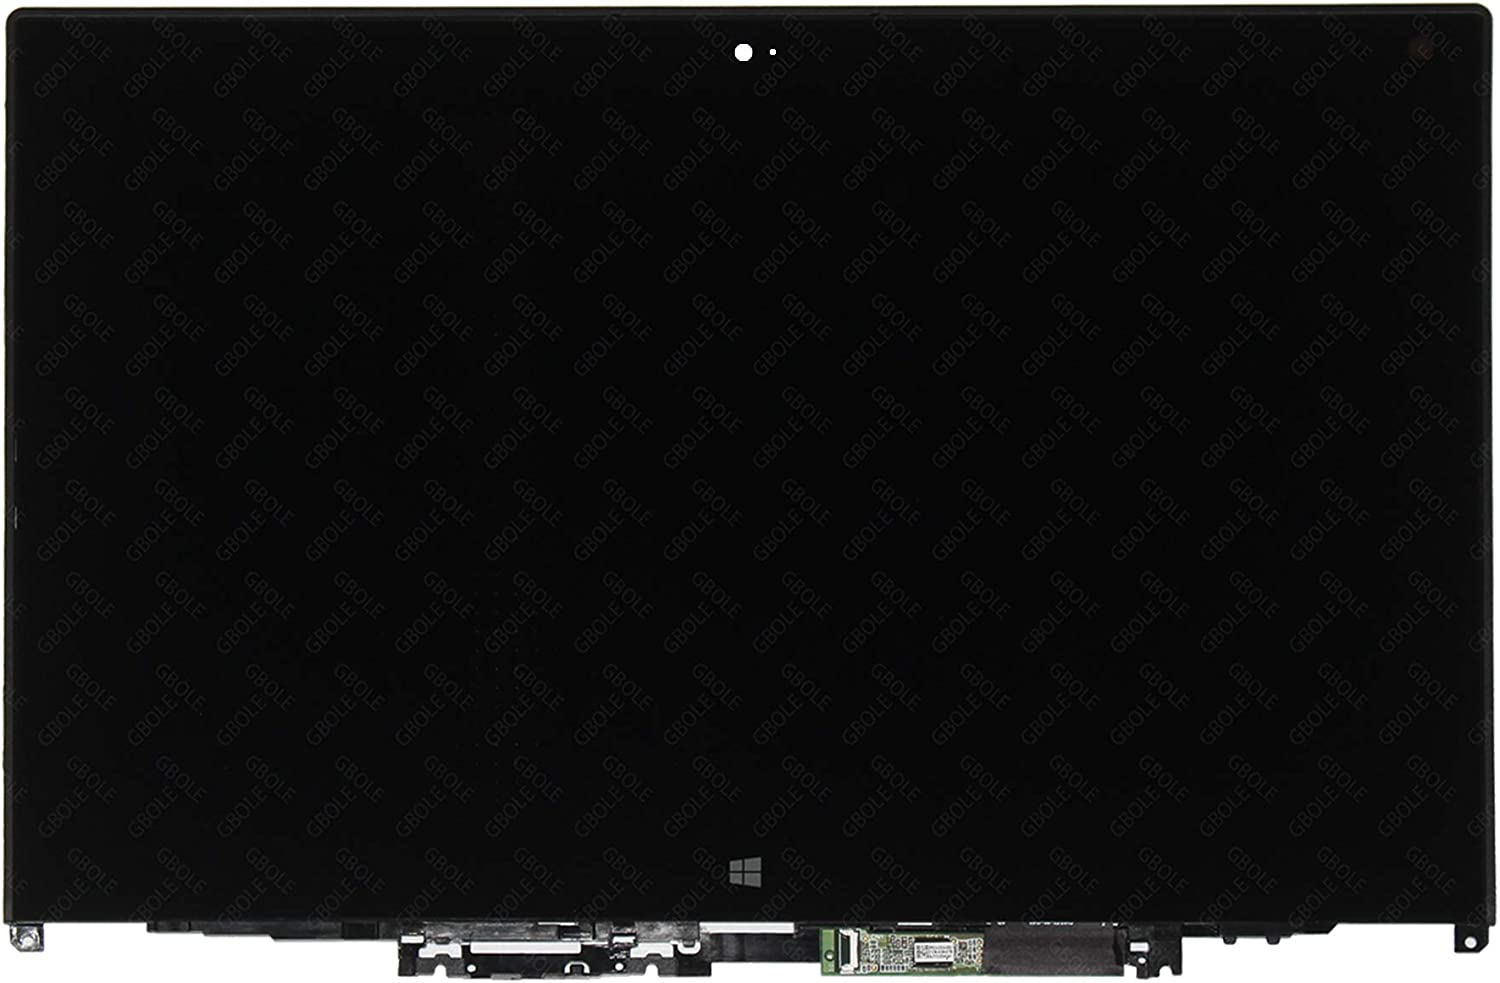 GBOLE Replacement for Lenovo ThinkPad Yoga 260 FHD 1920X1080 Touch LCD Screen Assembly with Bezel 01AX906 01HY615 (only for 1920X1080 Version)